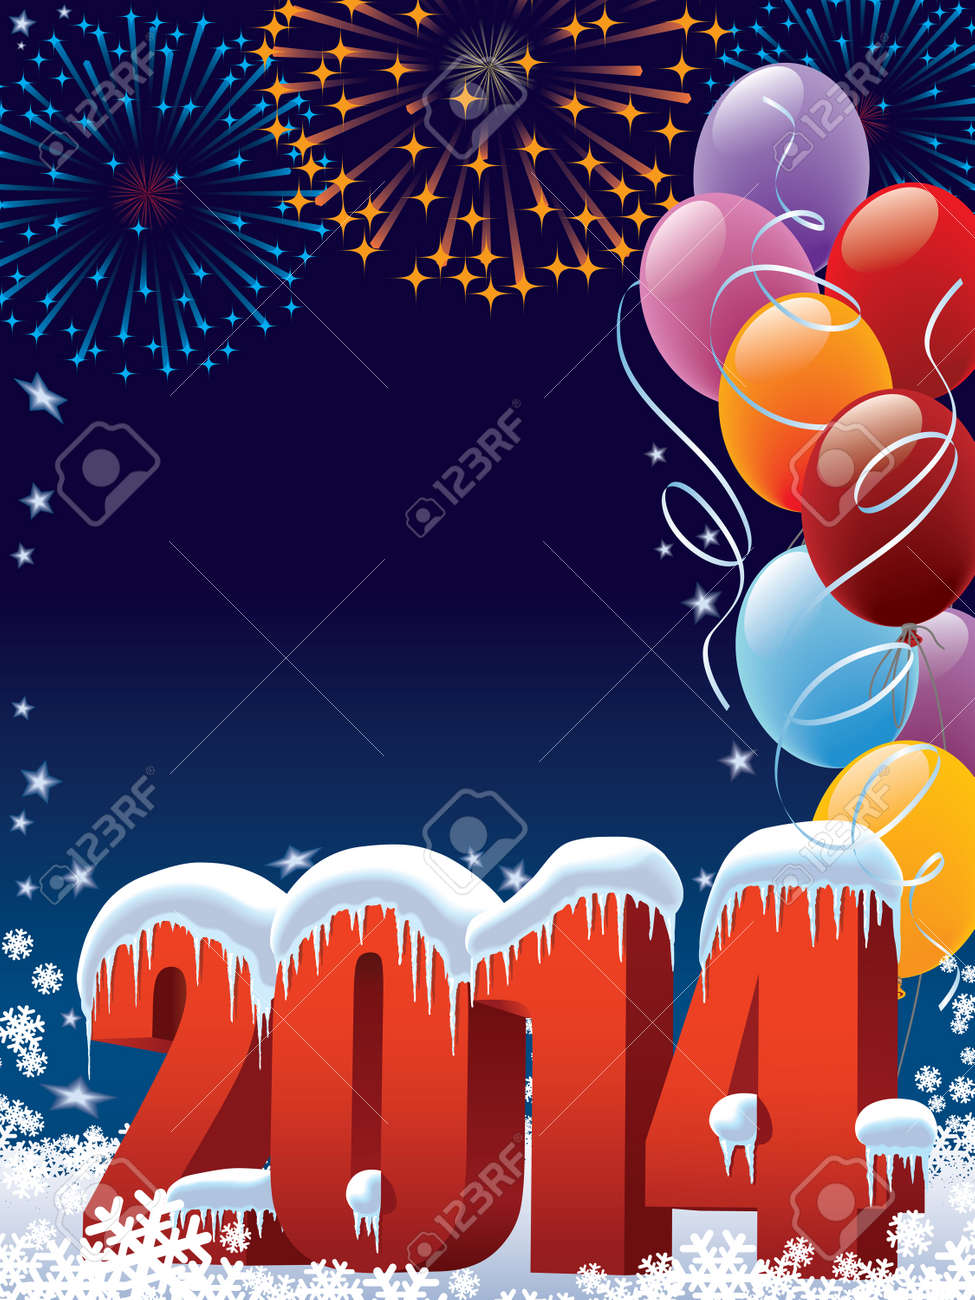 New Year 2014 decoration with copy space for your message Standard-Bild - 23293232